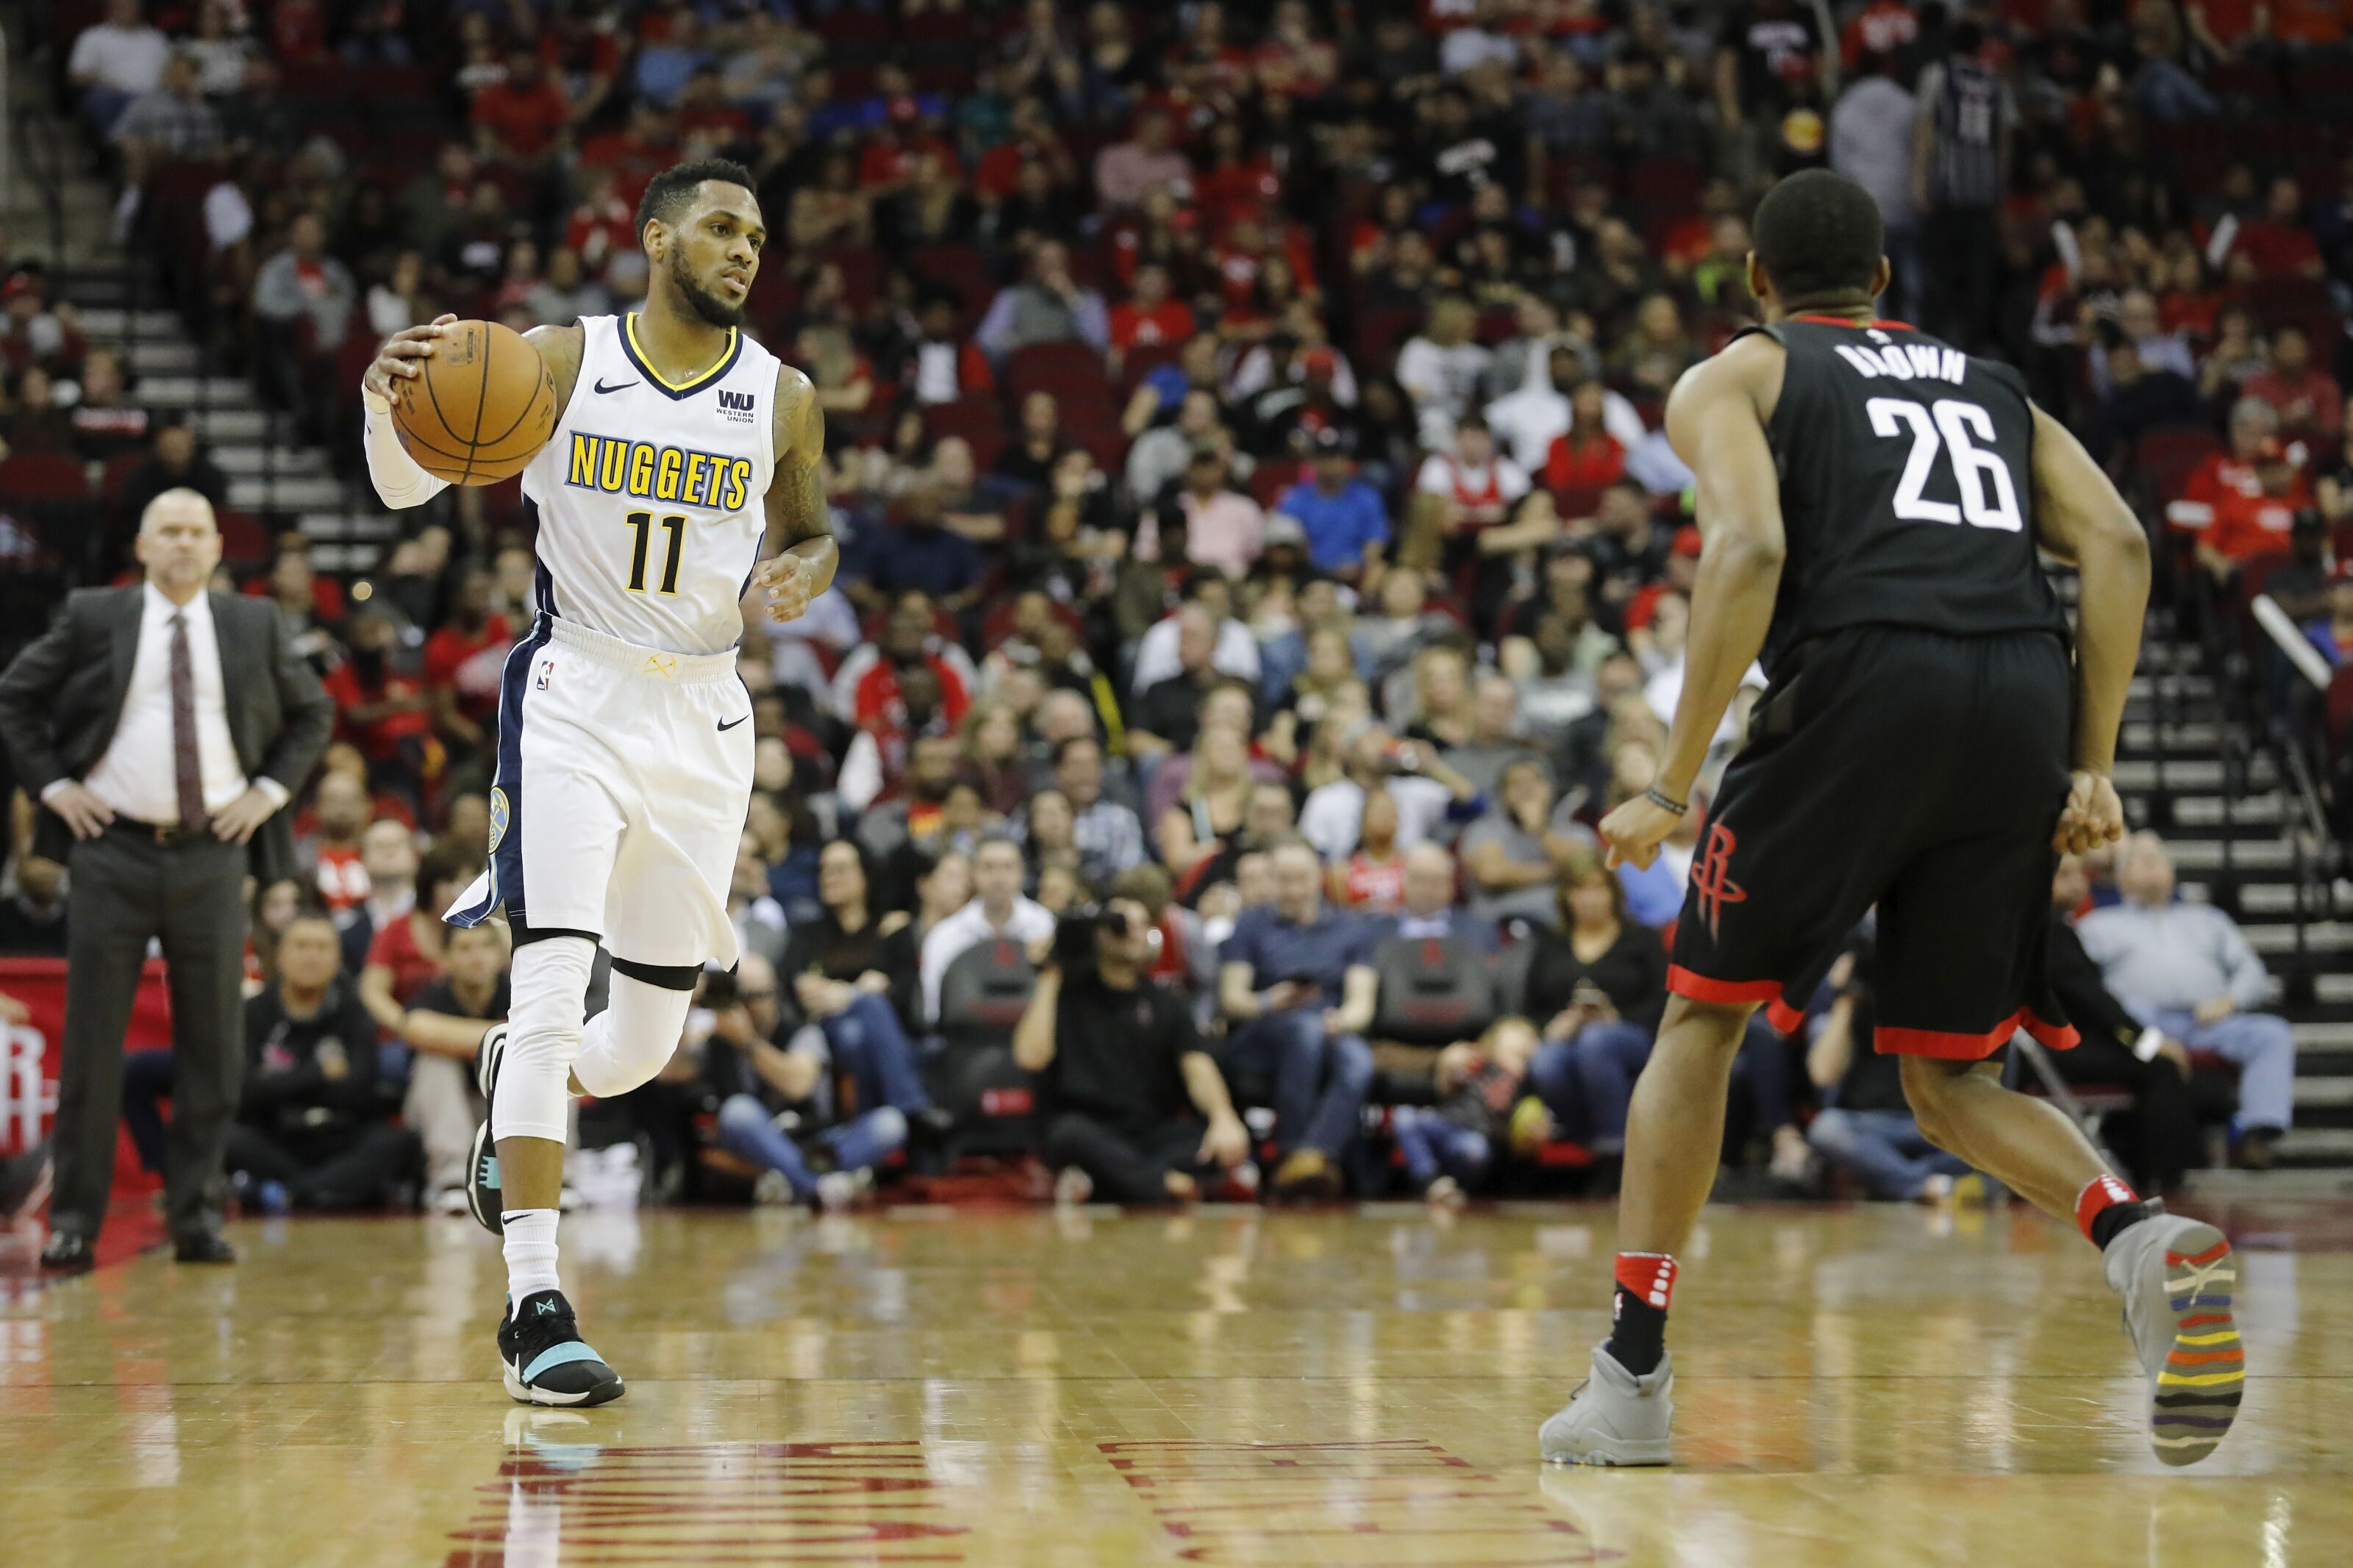 newest 0c930 5b643 Denver Nuggets roster appears set with Monte Morris signing